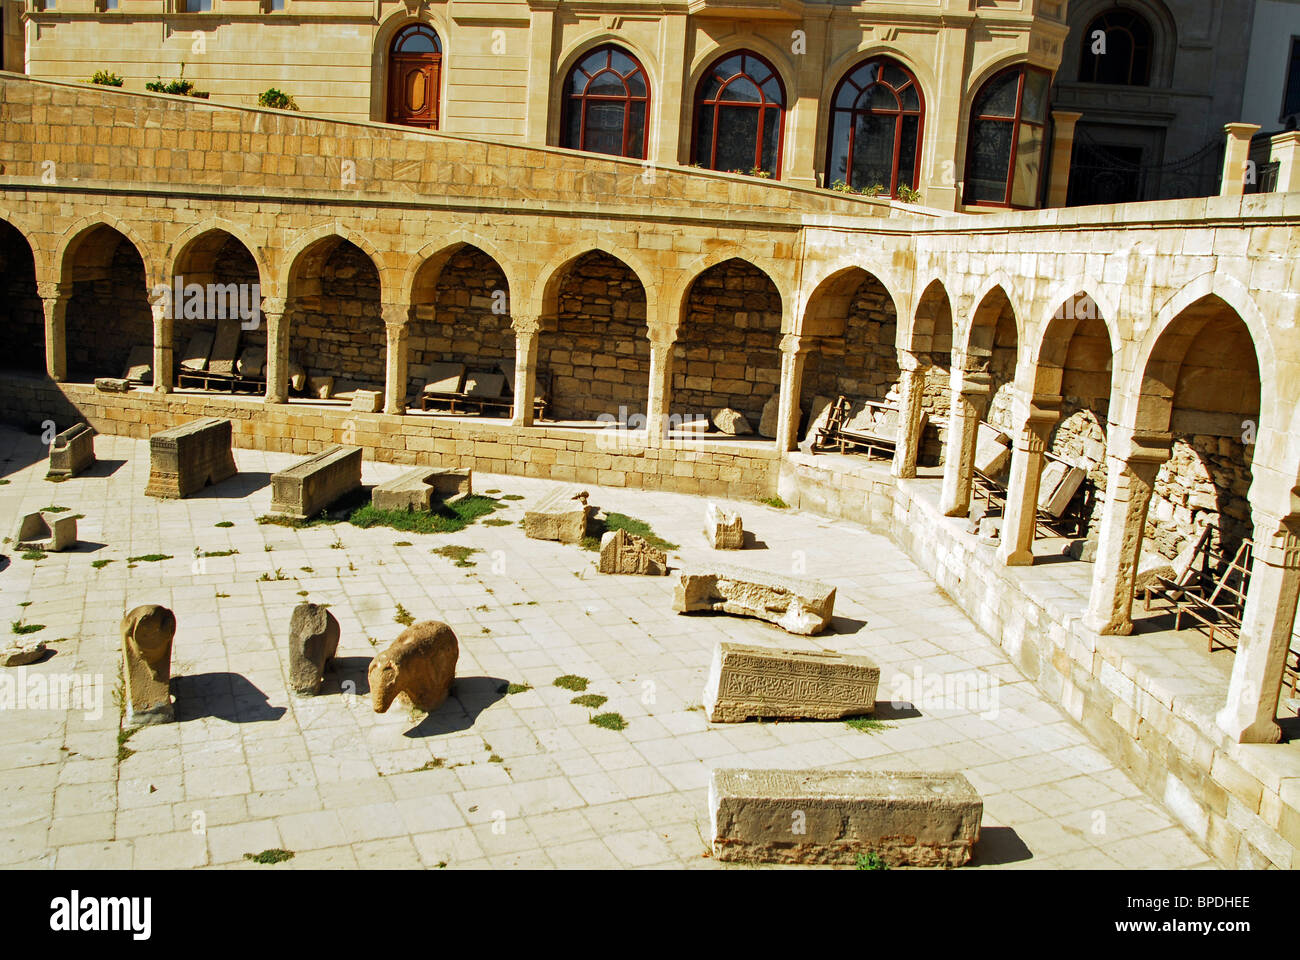 Baku, Azerbaijan, Vestige of the ancient market place in old inner Baku, with vaults and stone constructions - Stock Image